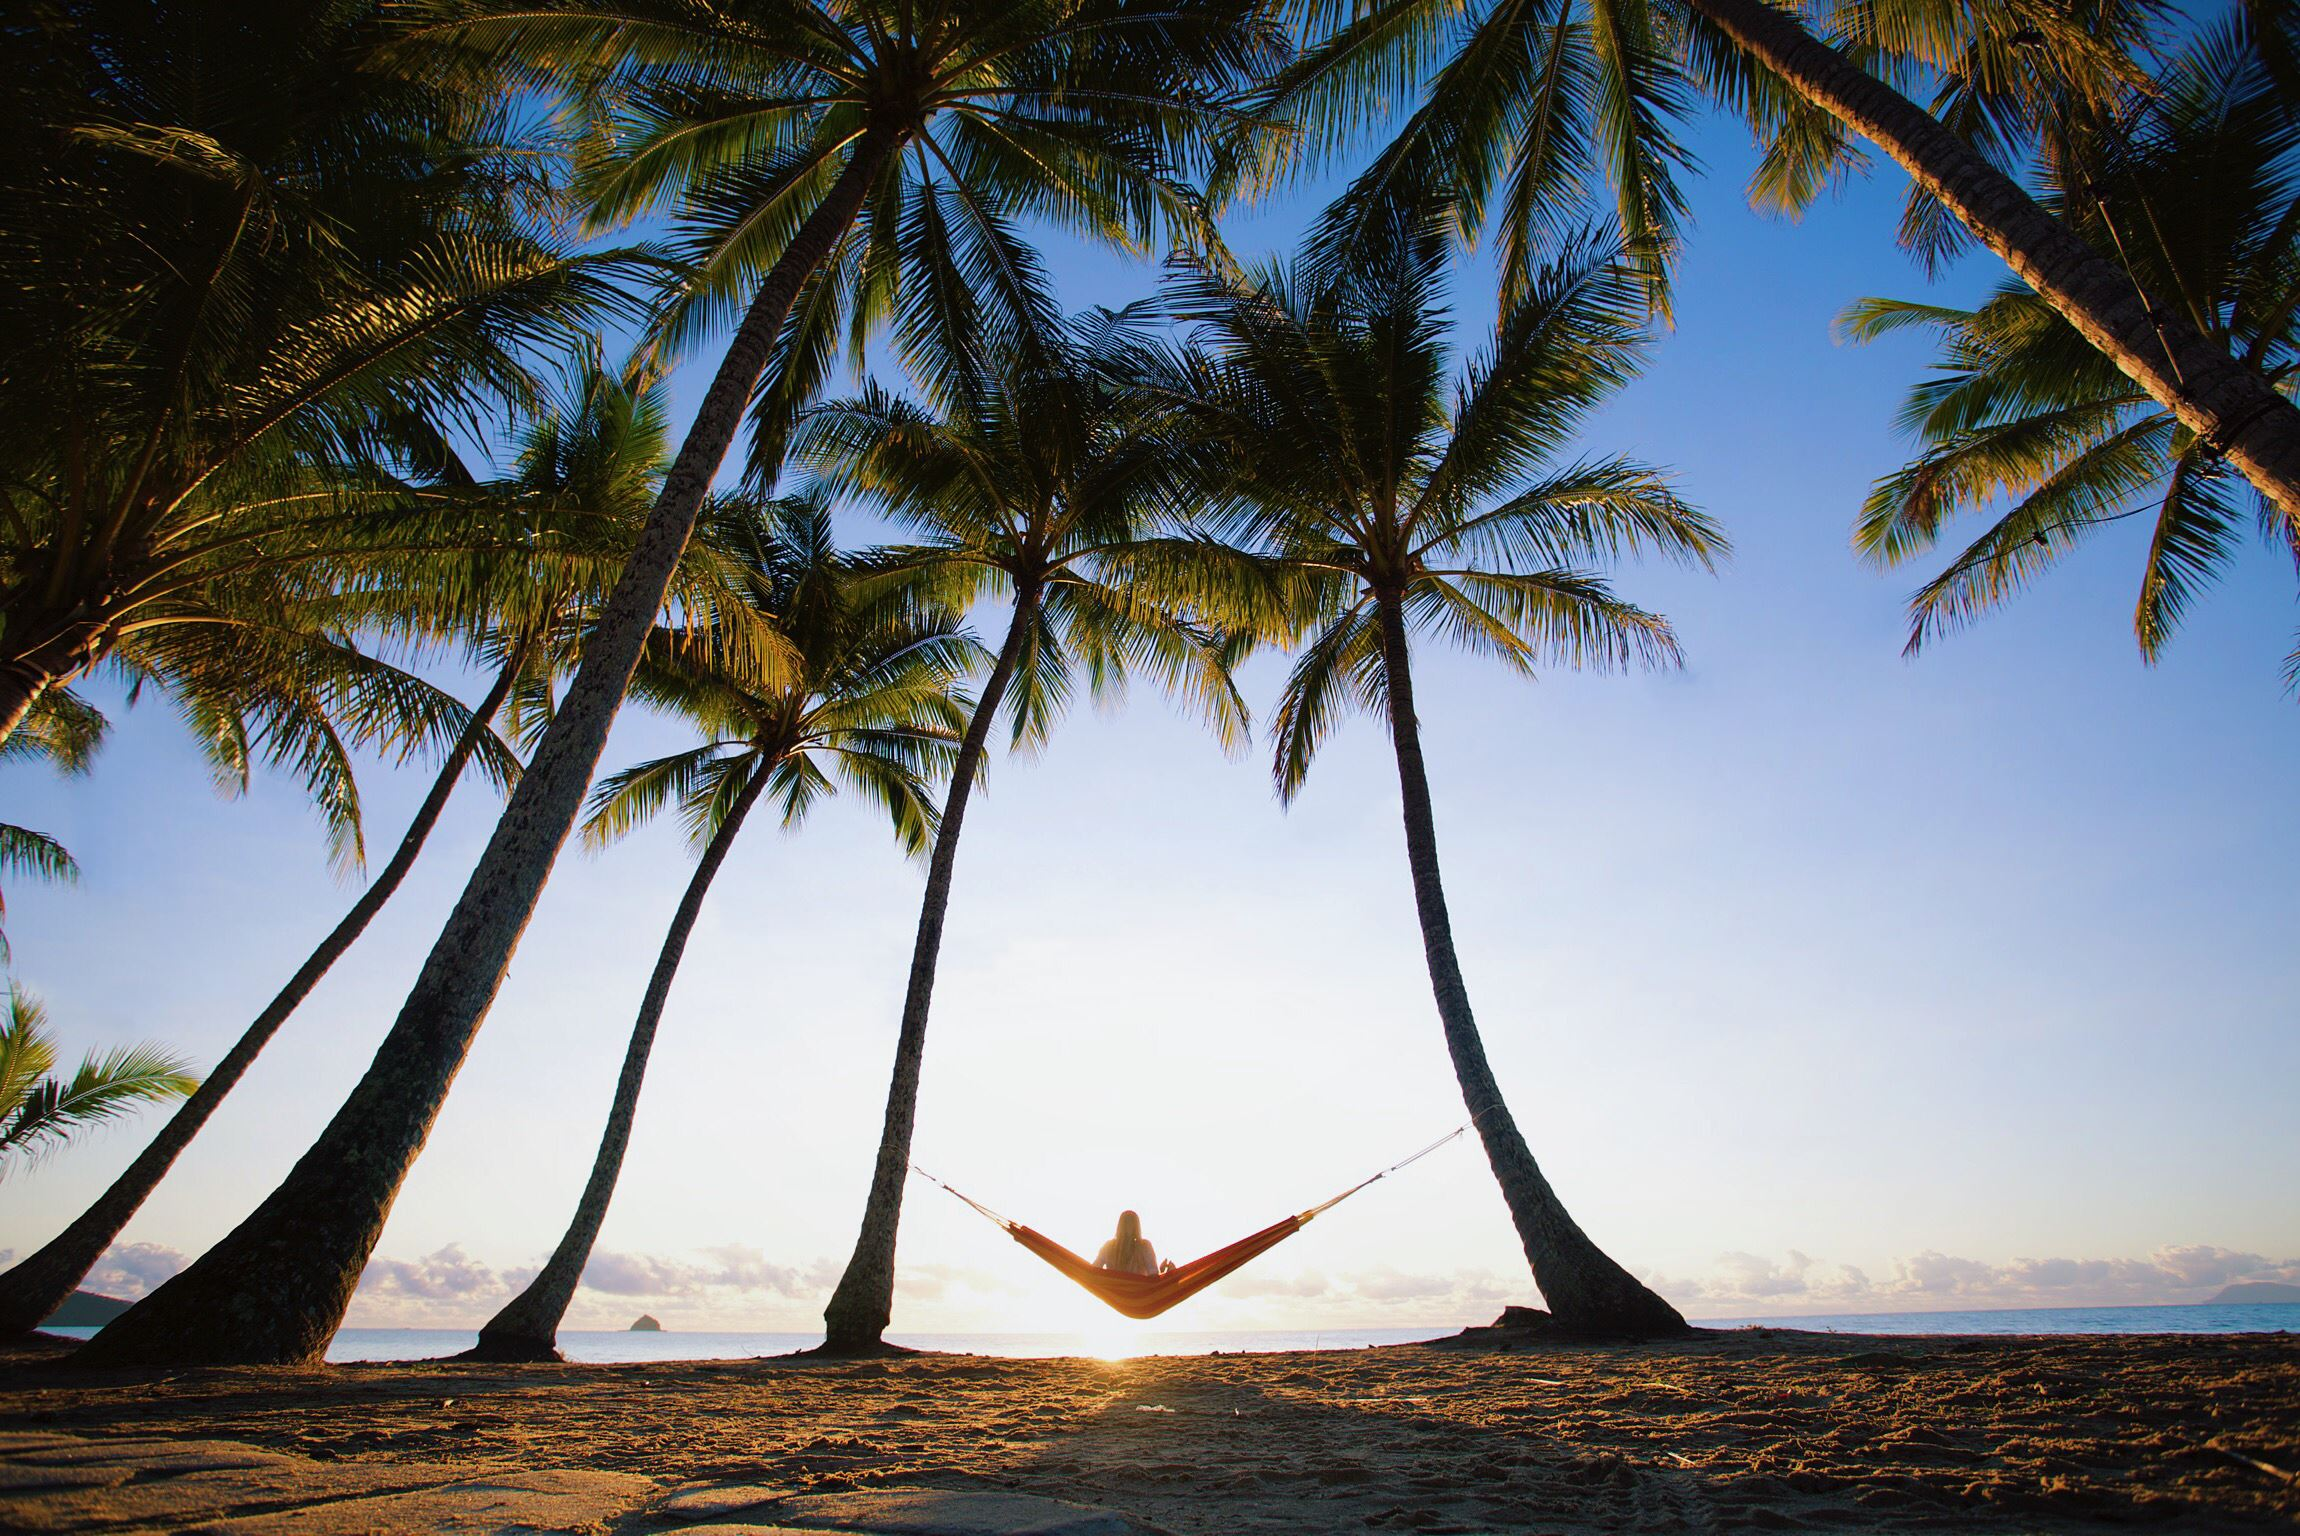 The perfect spot to hang a hammock at Palm Cove